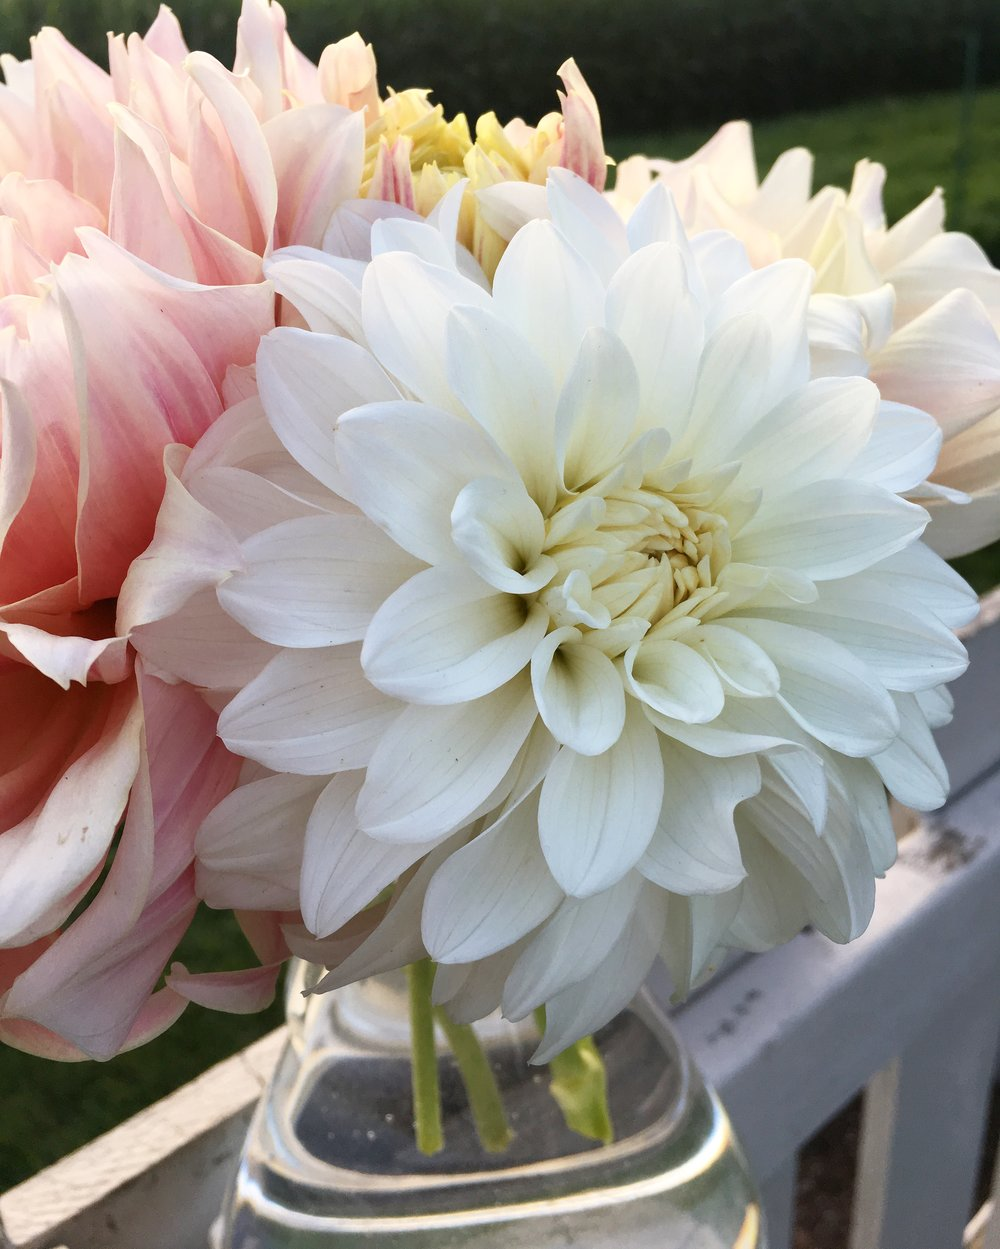 Canter Court dahlia front and center.